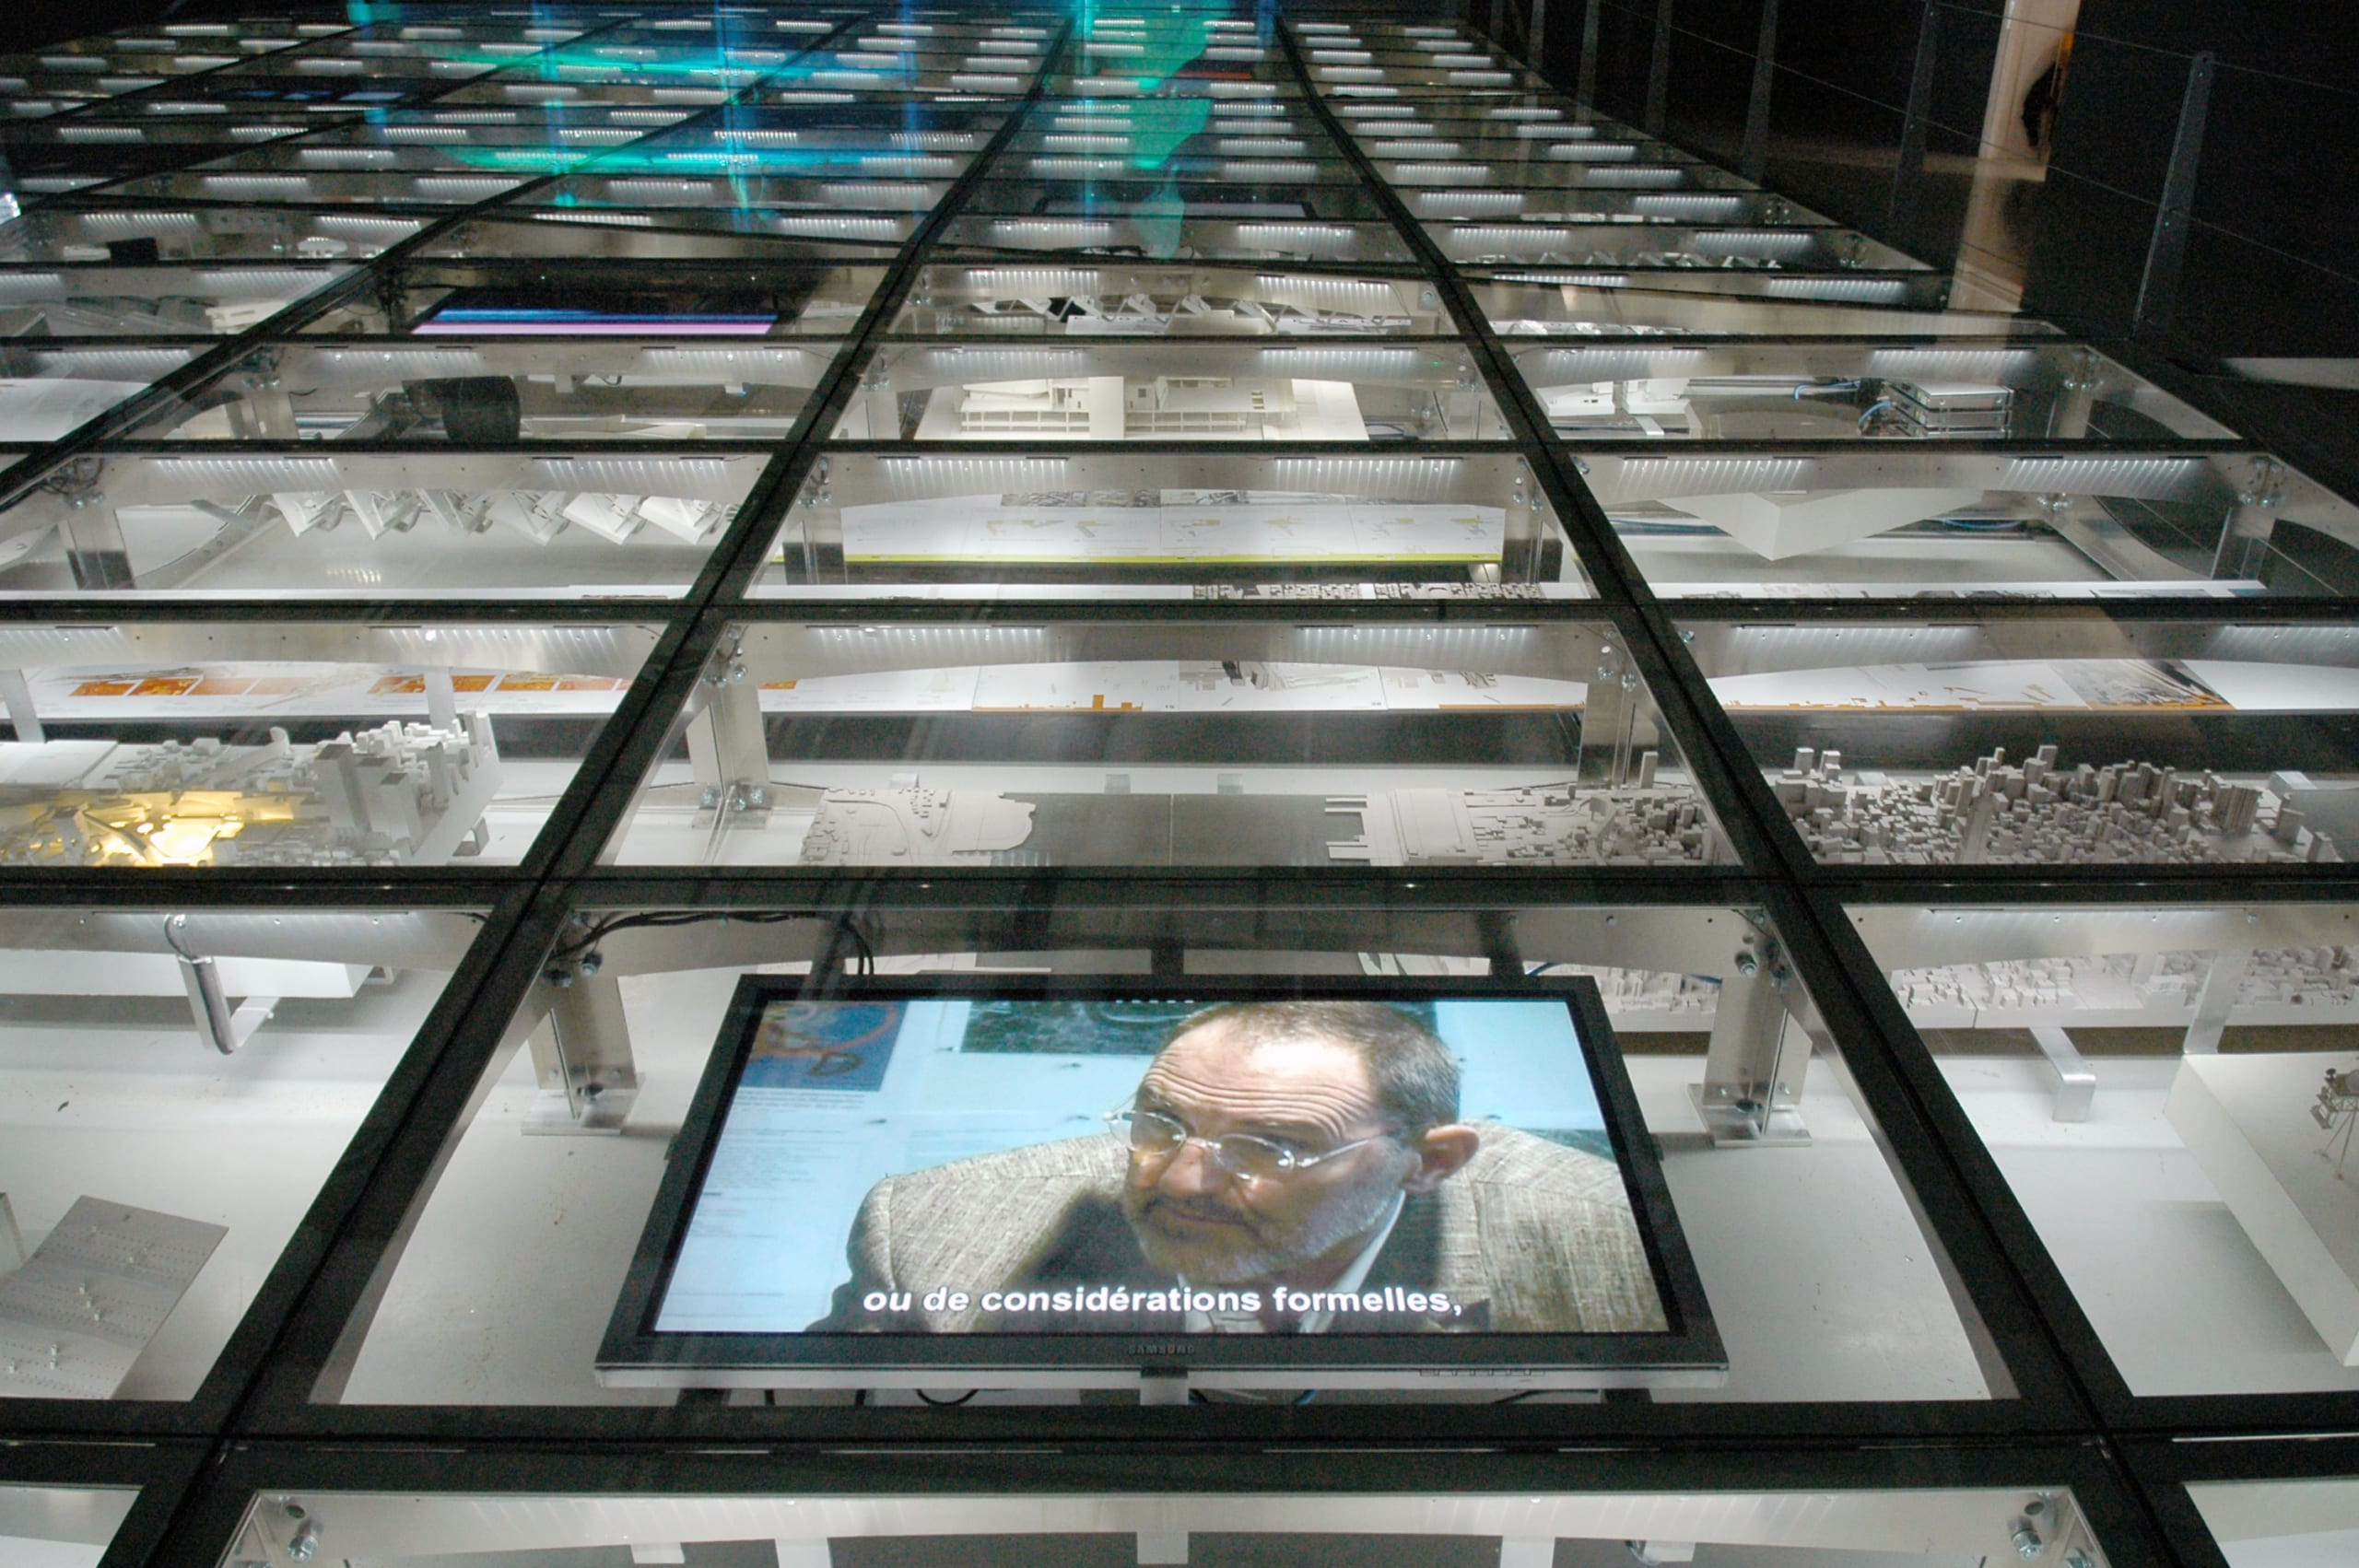 Video screens show Thom Mayne of Morphosis underneath the glass flooring.